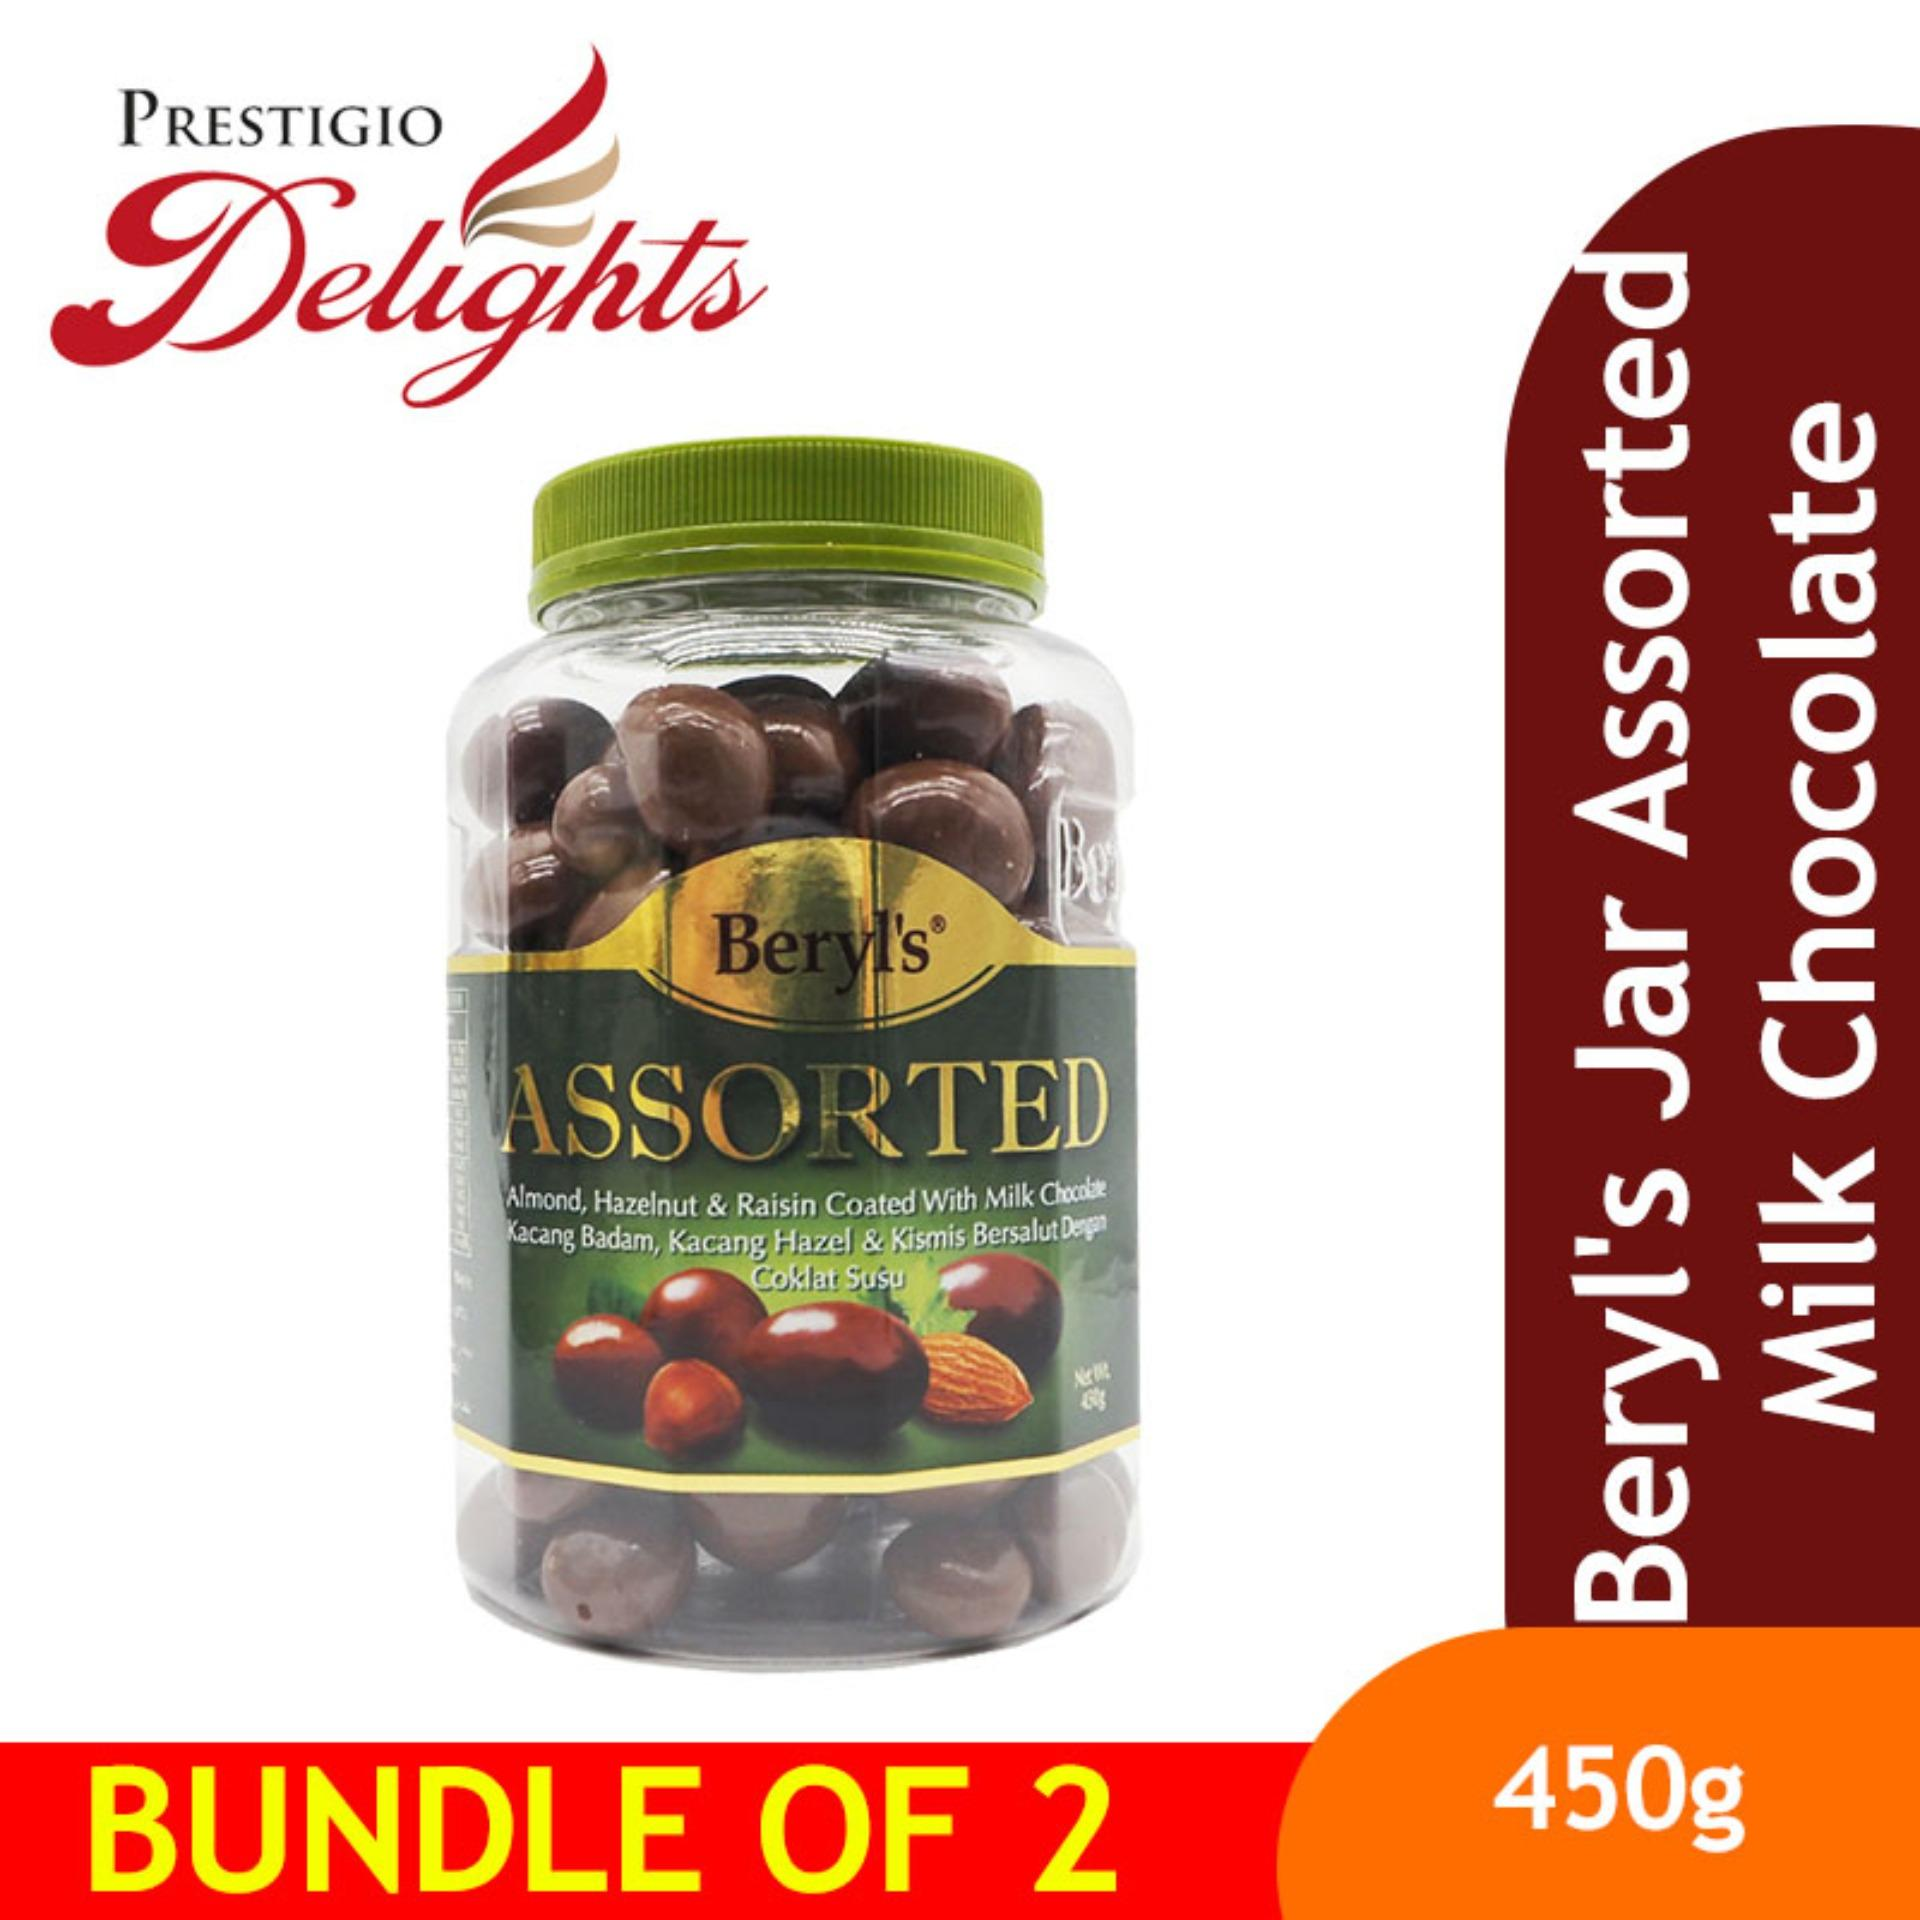 Beryls Jar Assorted Milk Chocolate Bundle Of 2 By Prestigio Delights.